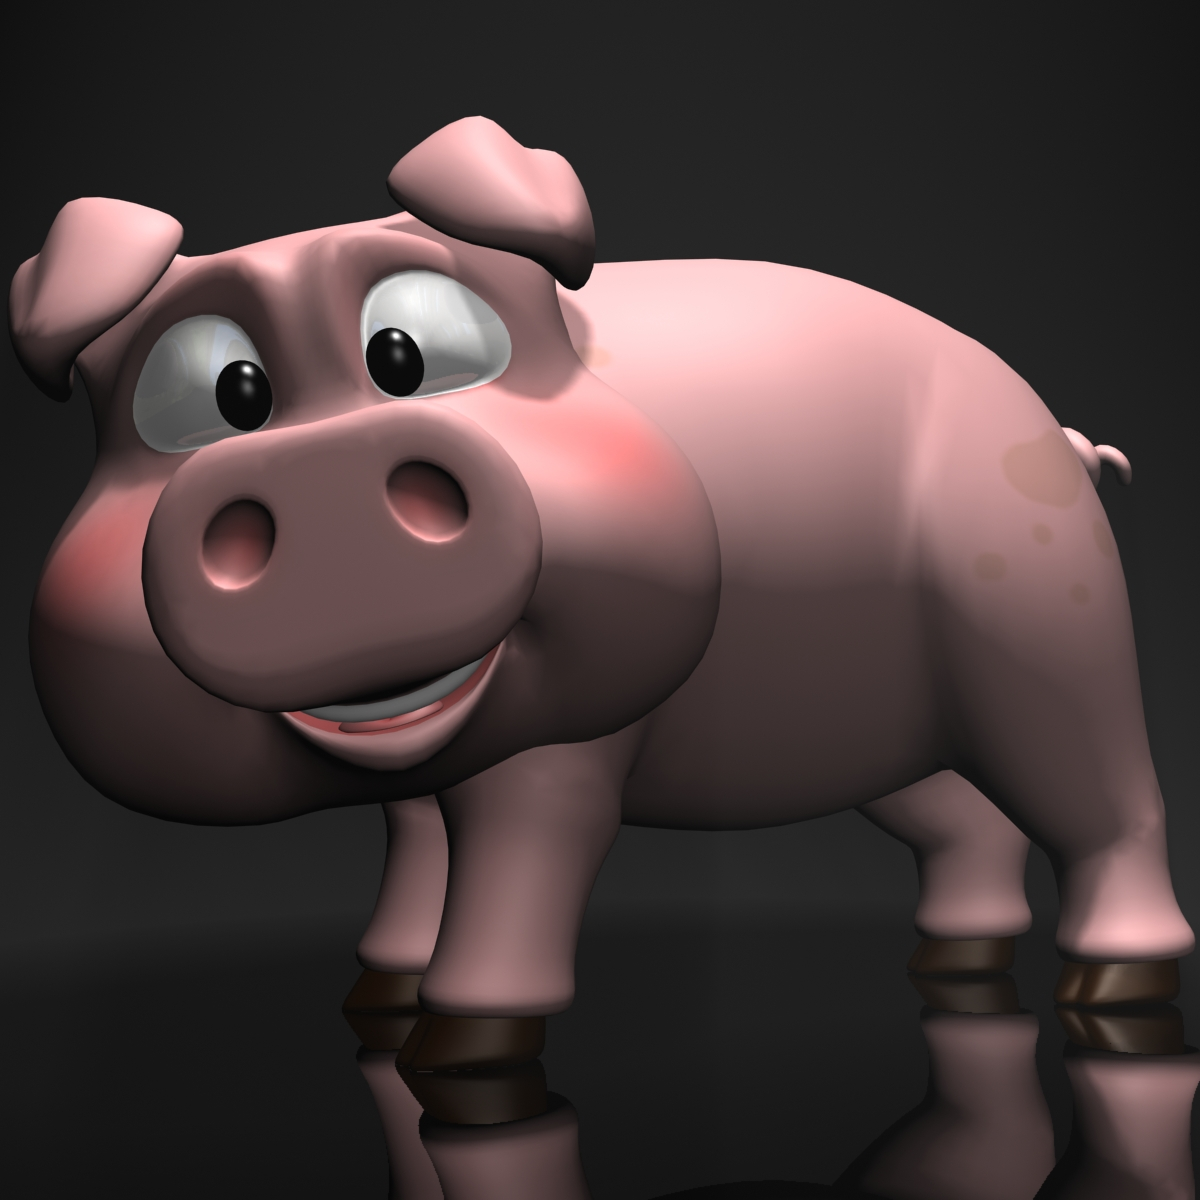 cartoon pig rigged 3d model 3ds max fbx  obj 205525